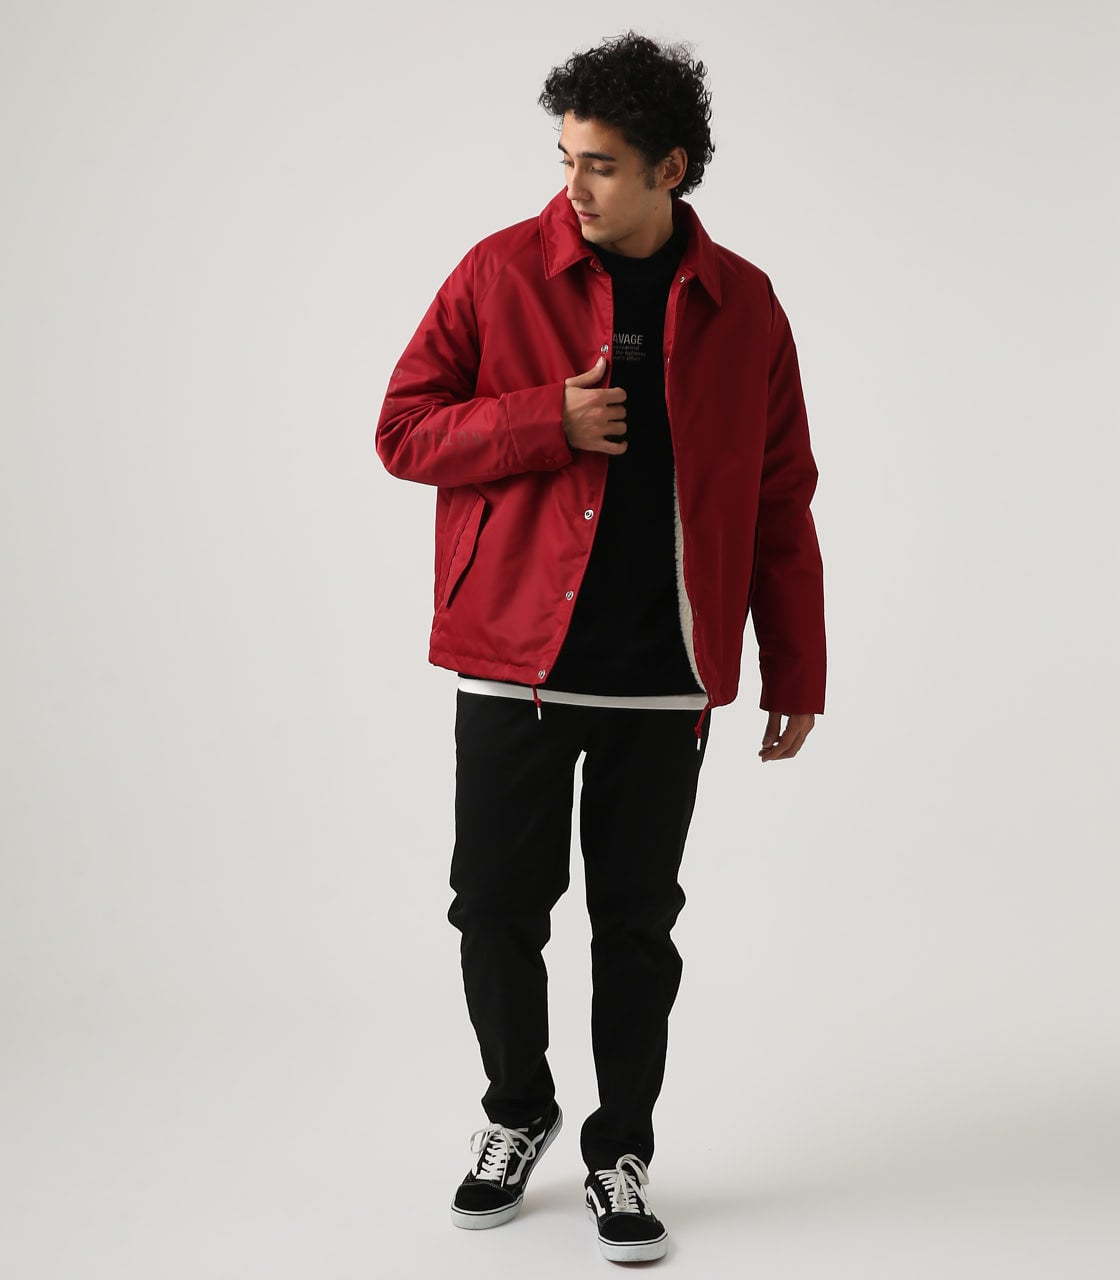 【AZUL BY MOUSSY】ヘビーツイルボアコーチジャケット 詳細画像 RED 4